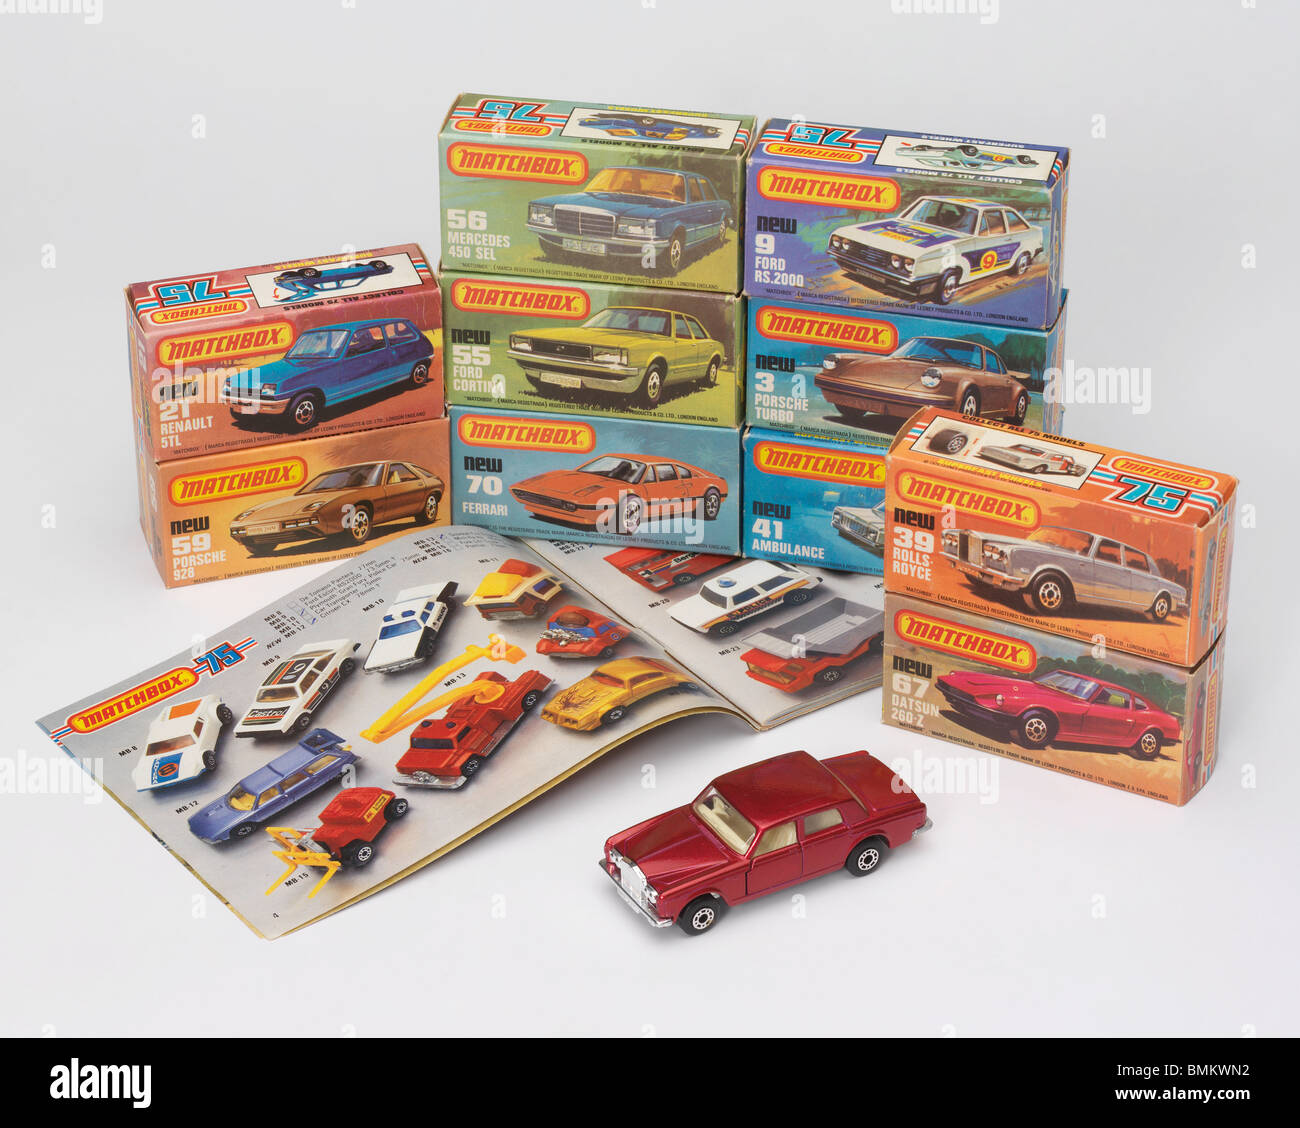 Toy cars from the late 1970's early 1980's Stock Photo